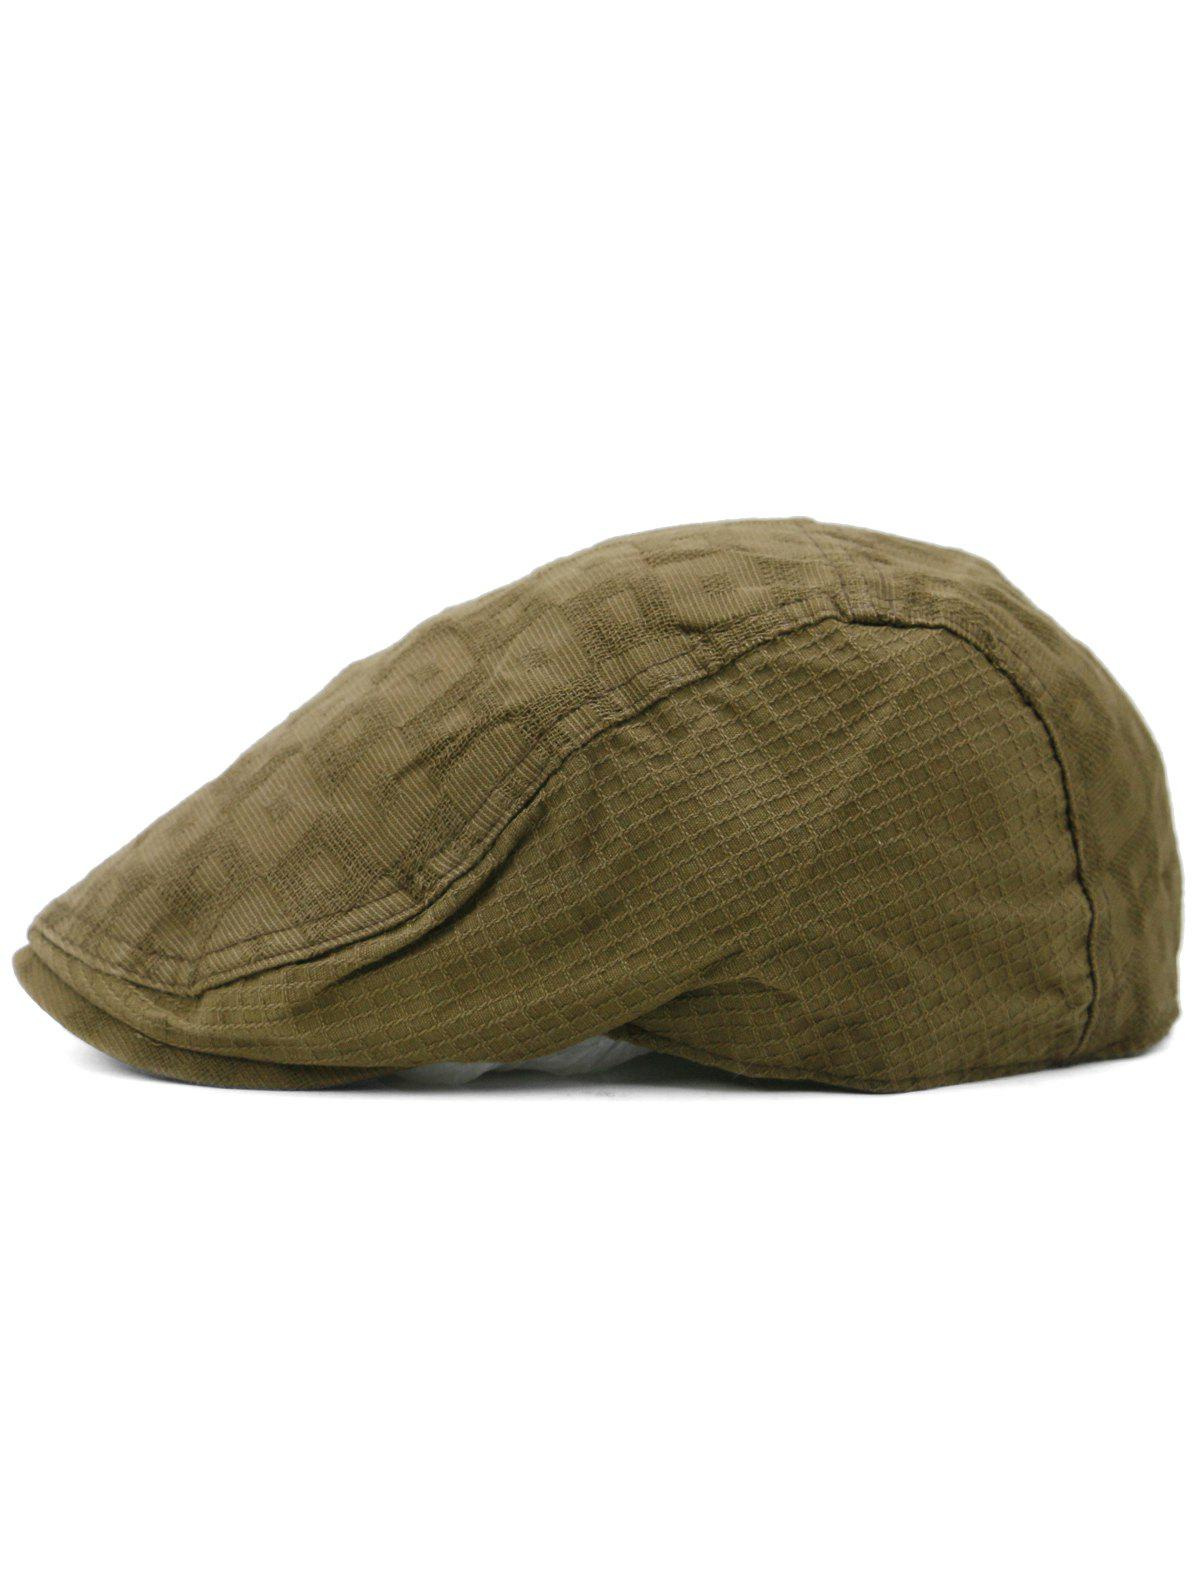 Outdoor Checked Pattern Cabbie Hat - COFFEE